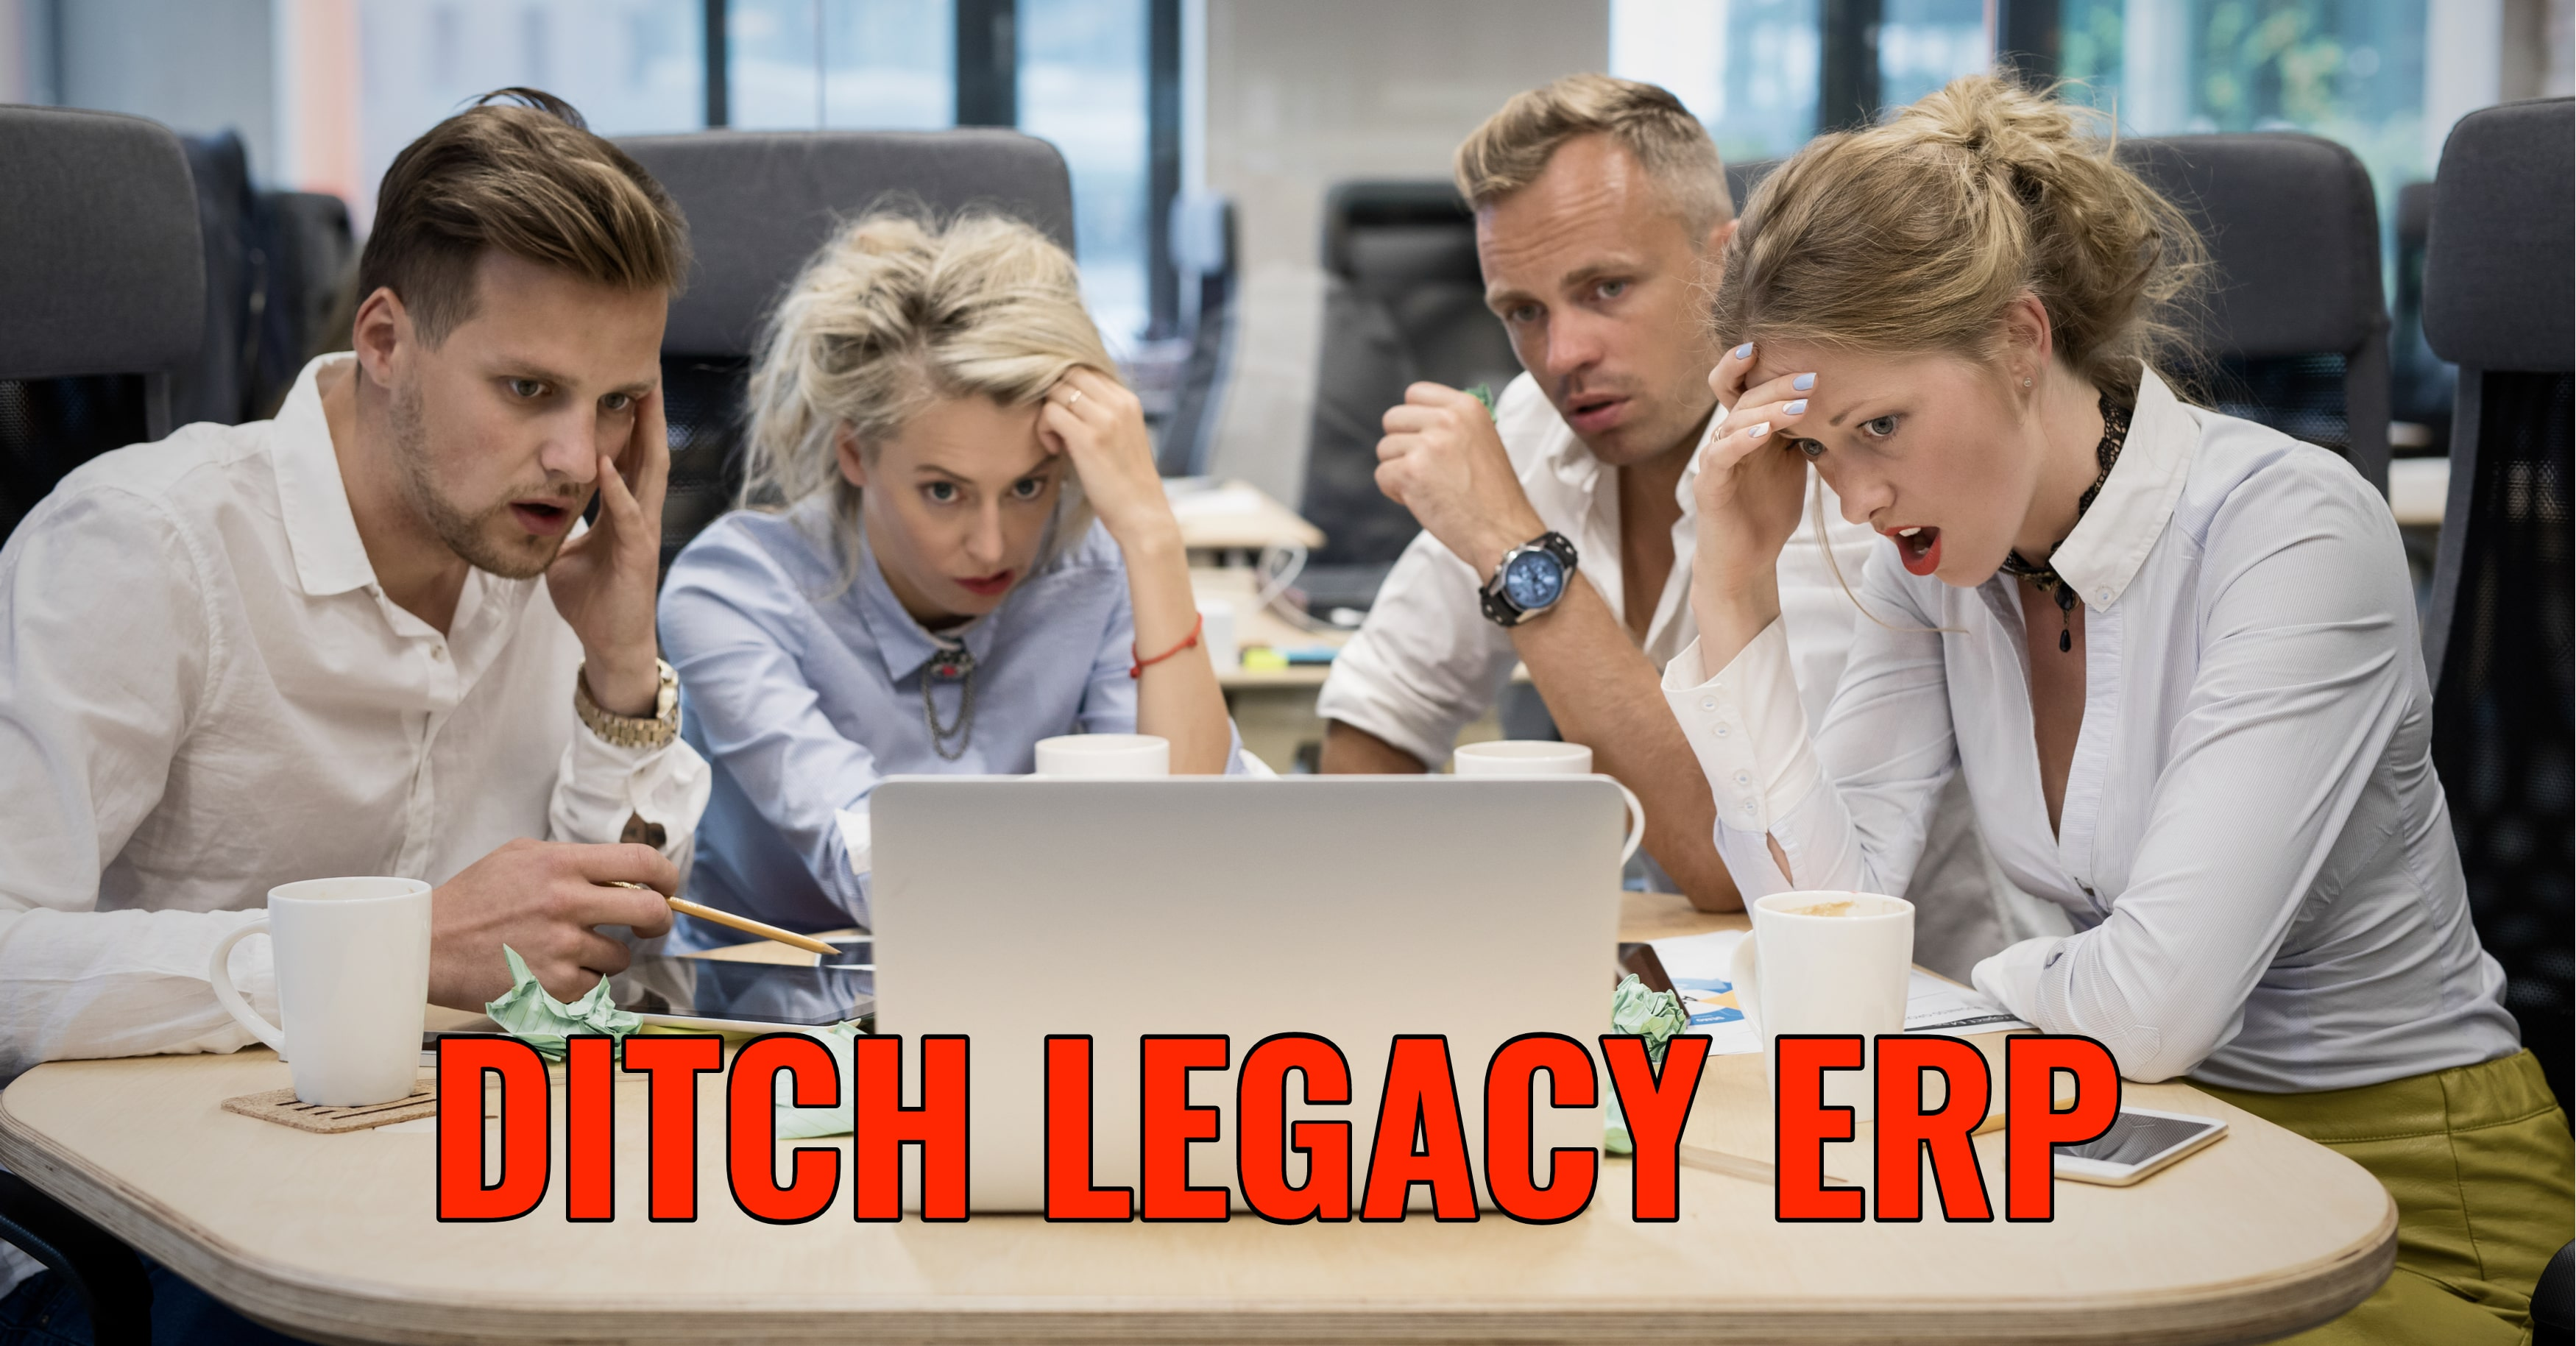 Ditch Legacy ERP, or Put Your Business at Risk!